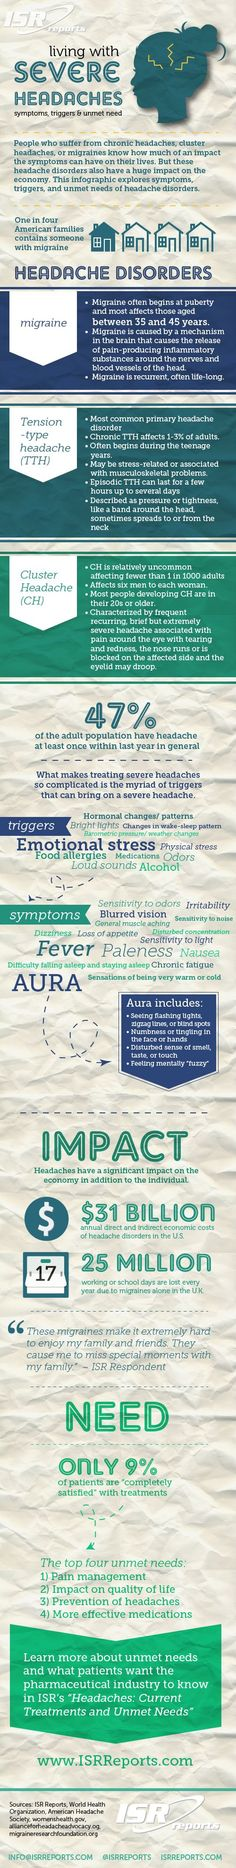 Living with Severe Headaches: Symptoms, Triggers, and Unmet Needs | Visual.ly